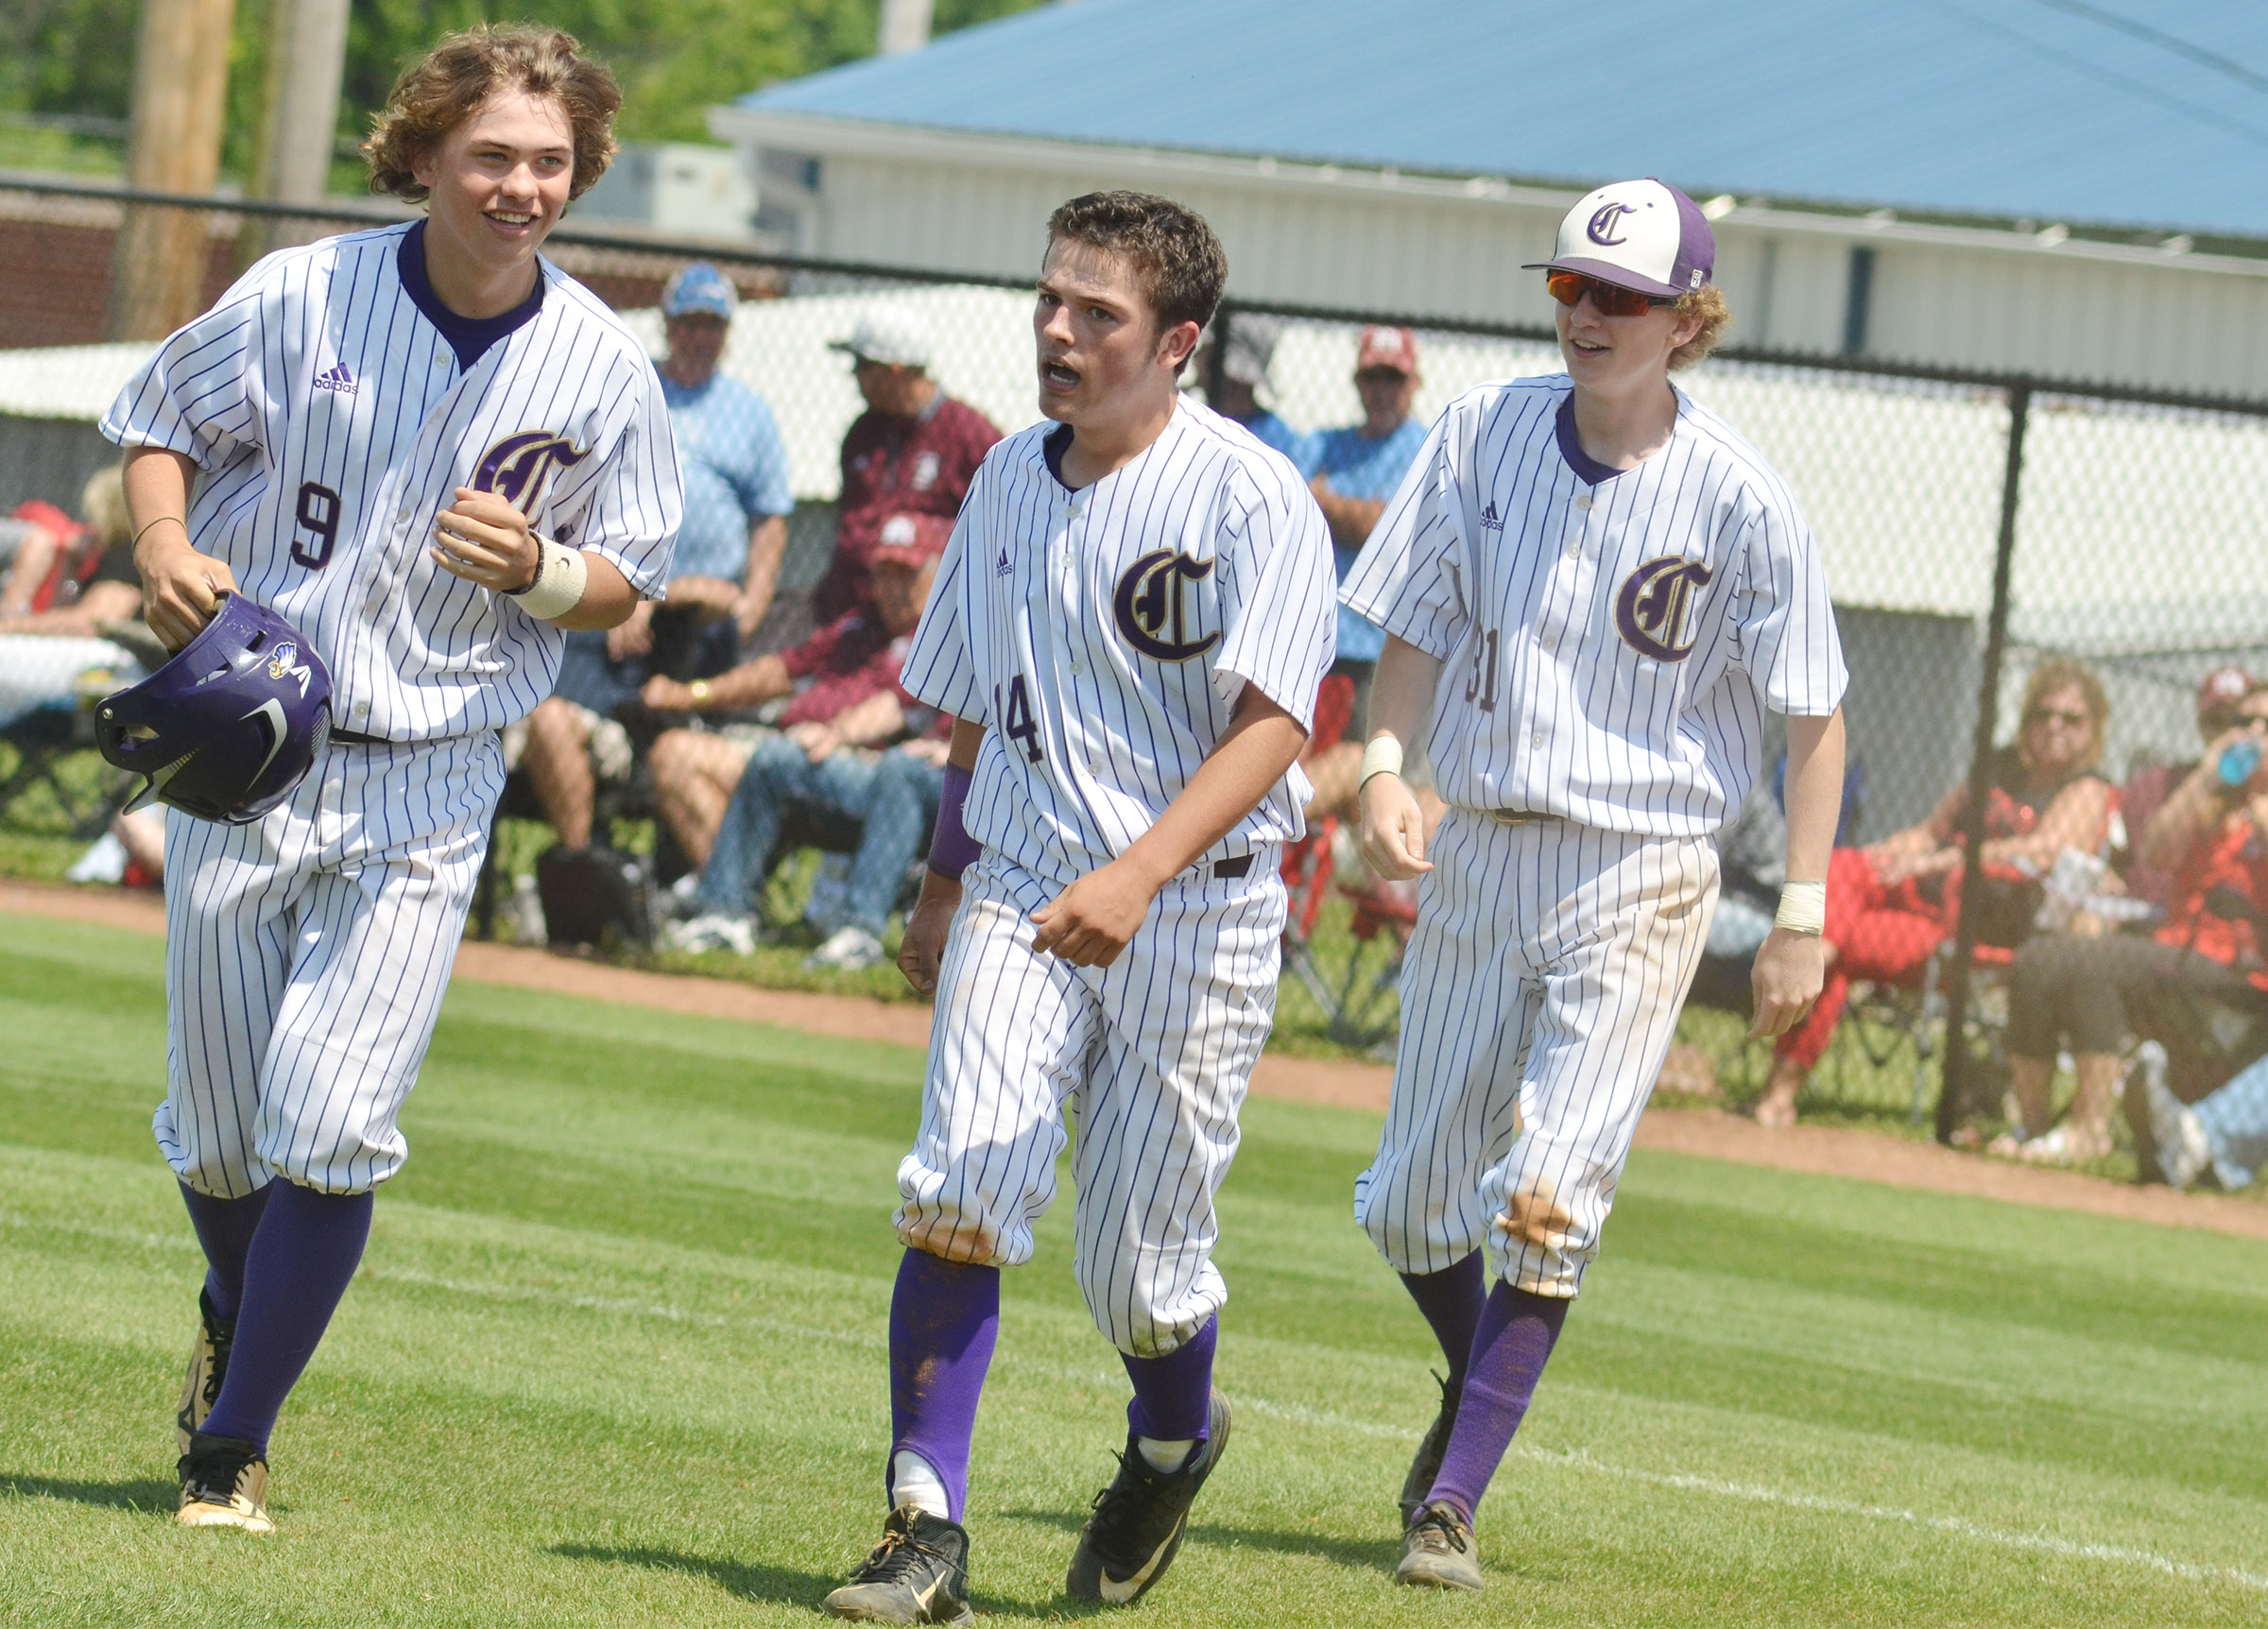 CHS sophomore Treyce Mattingly, at left, celebrates with teammates Ryan Kearney, center, and Jackson Hinton, also sophomores, after hitting a three-run homerun.